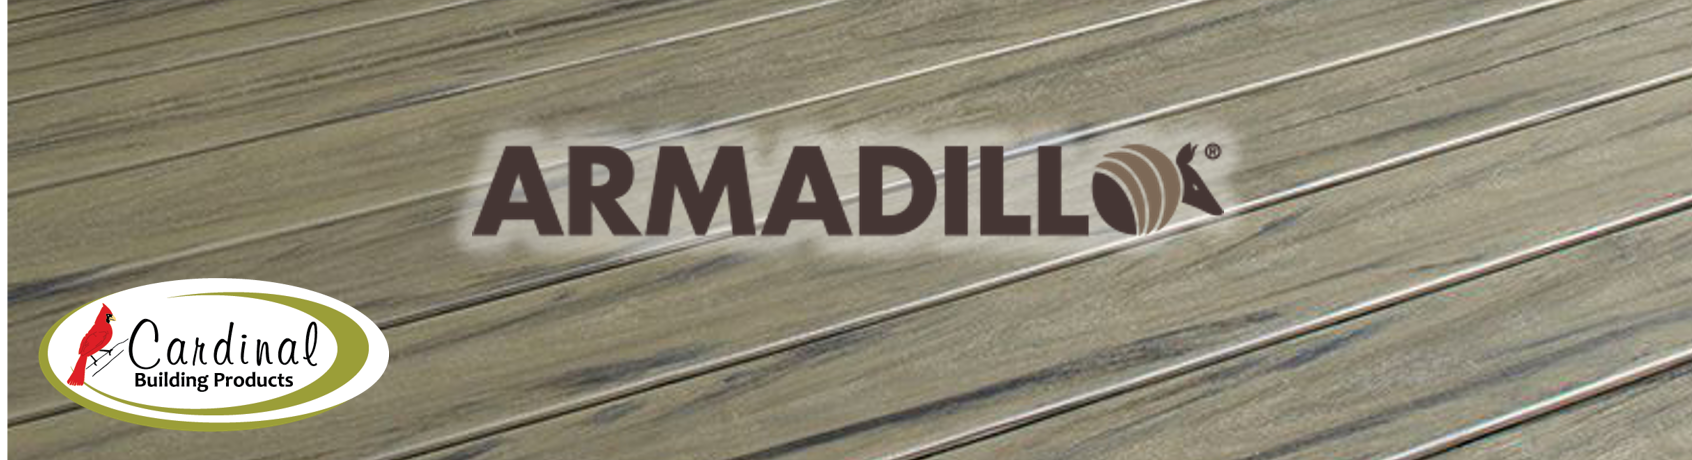 Armadillo Decking - Cardinal Building Products